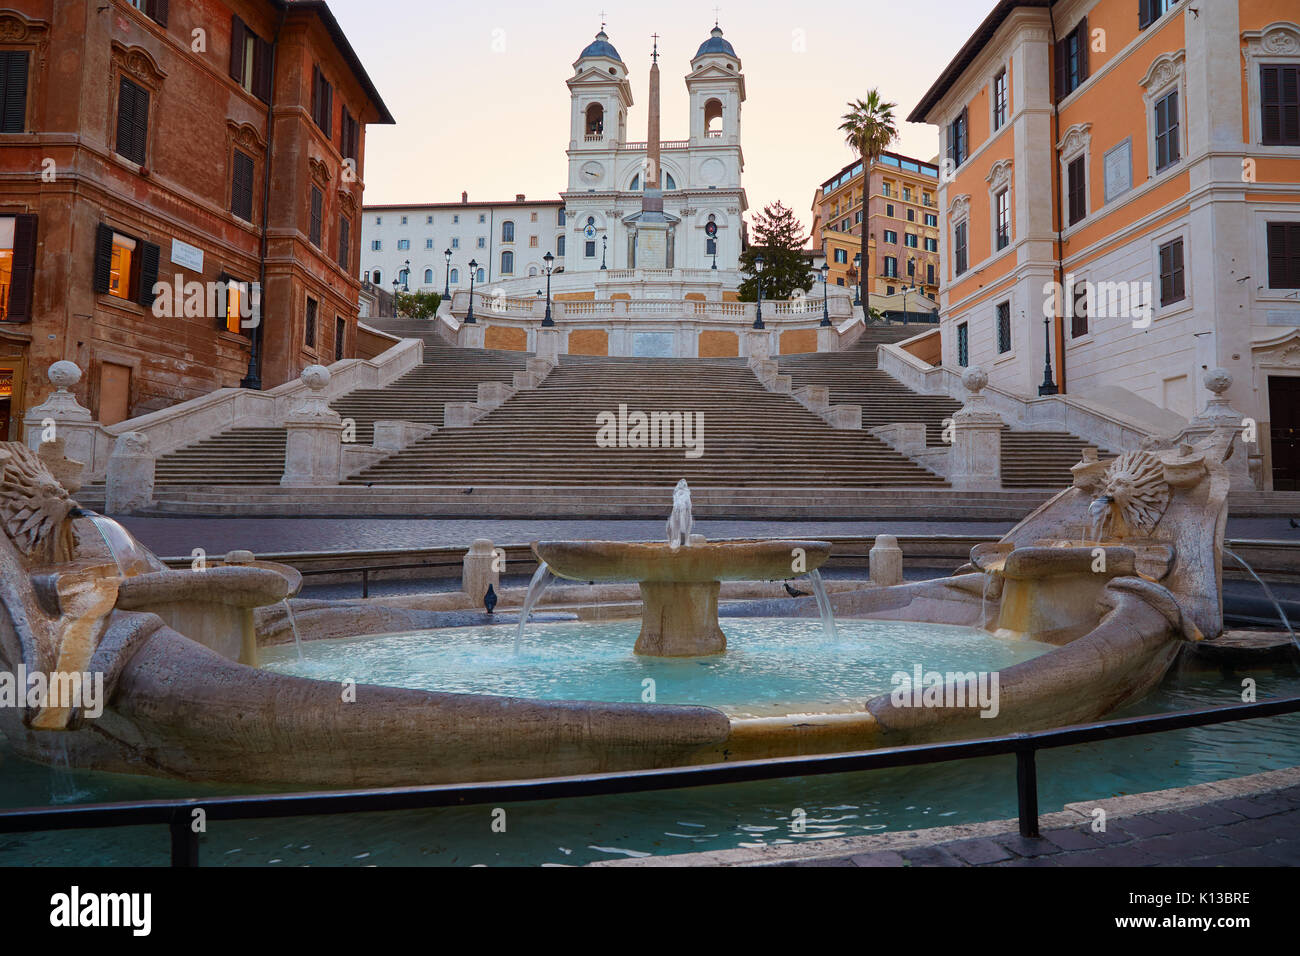 Spanish steps and fountain in Rome, Italy in the early morning without people - Stock Image